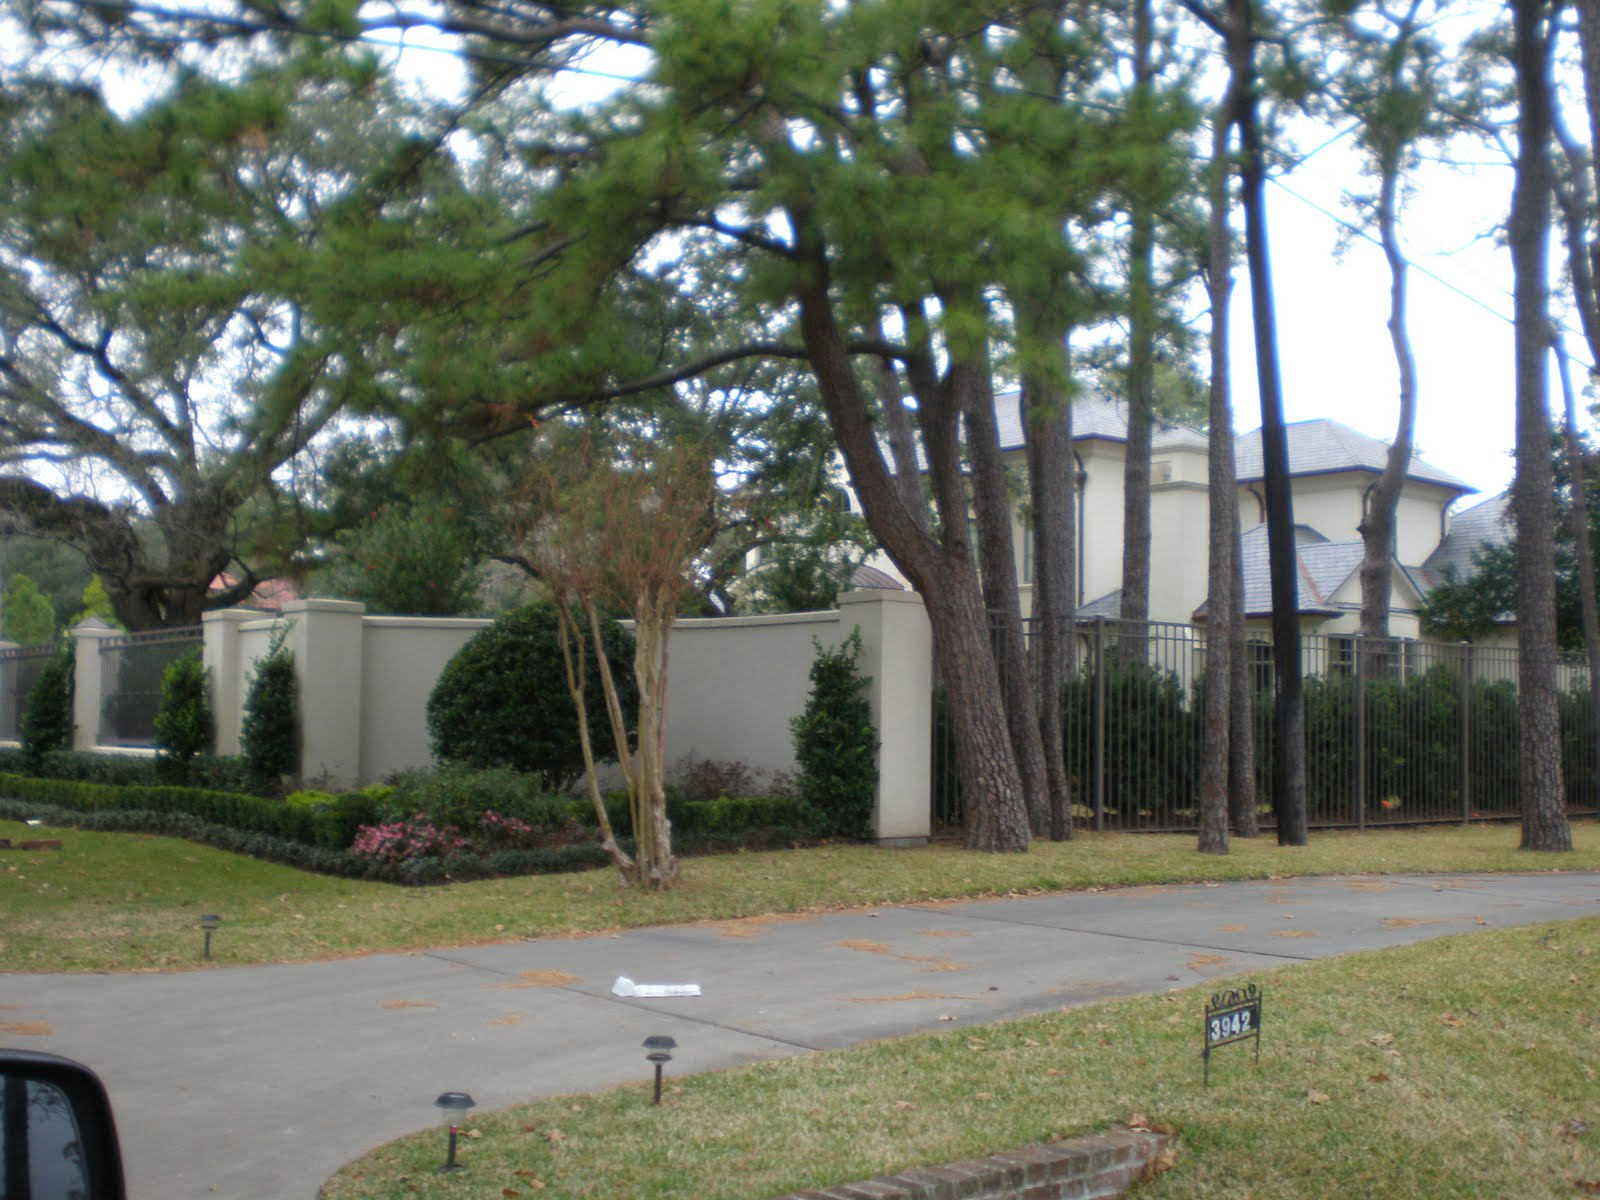 Pics of Joel Osteen's House http://www.cenlanews.com/2011/01/joel-osteens-estate-in-houston.html#!